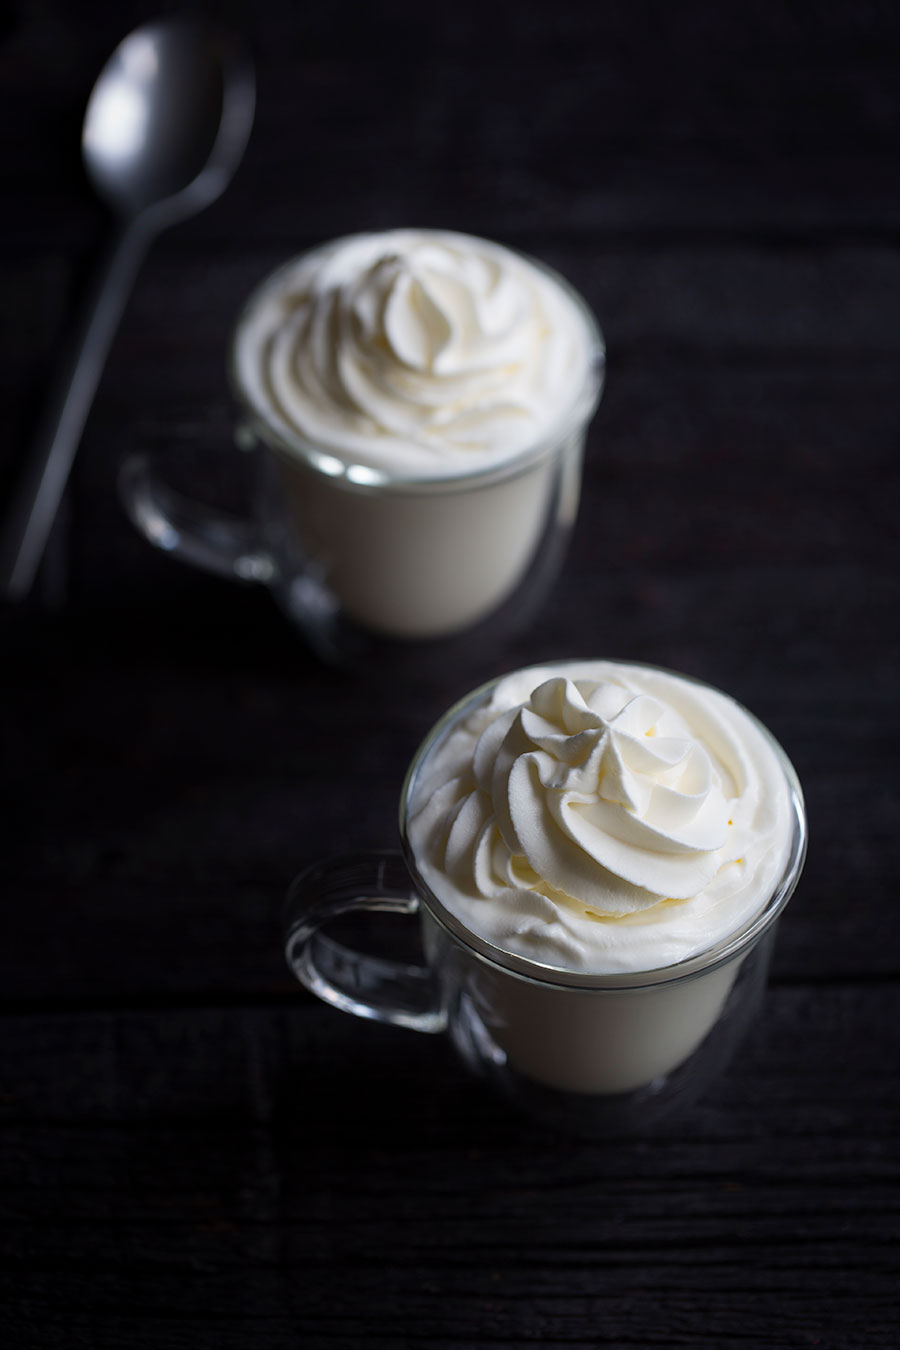 A close up photo of white hot chocolate on a dark backdrop.